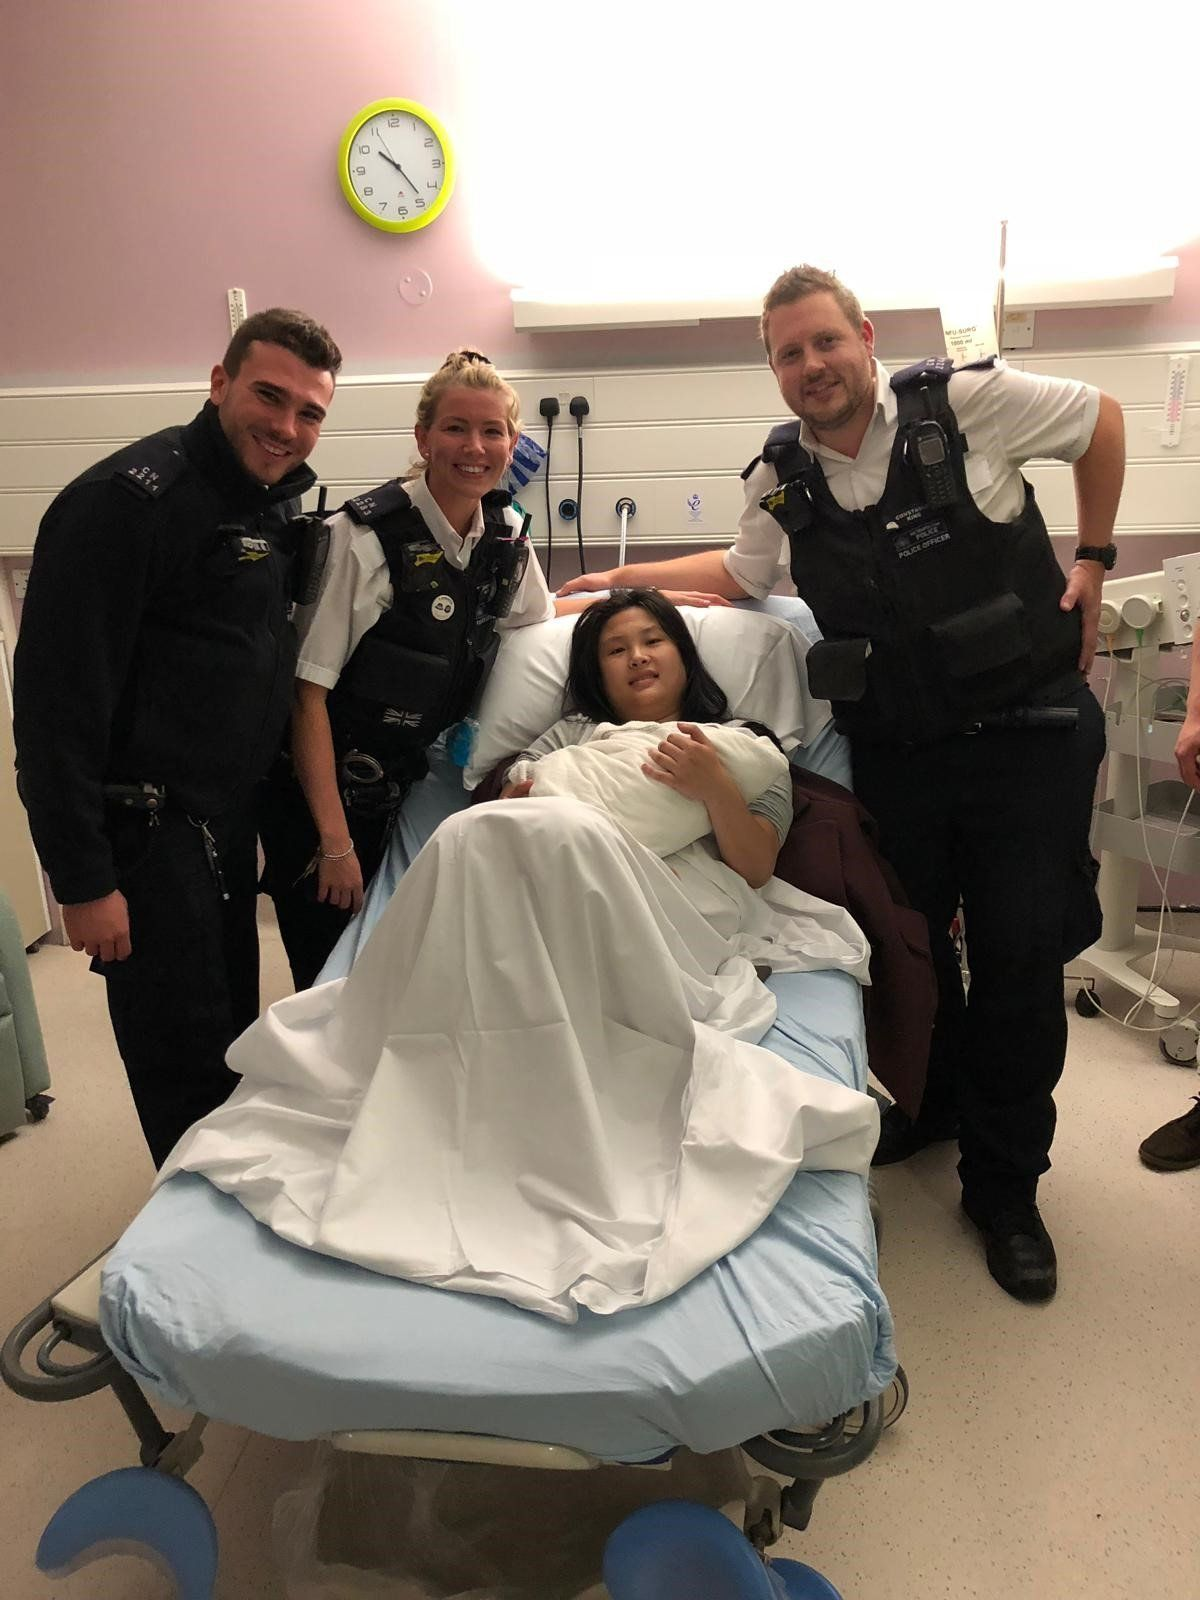 Police Officers Help Deliver Baby After Mum Went Into Labour In The